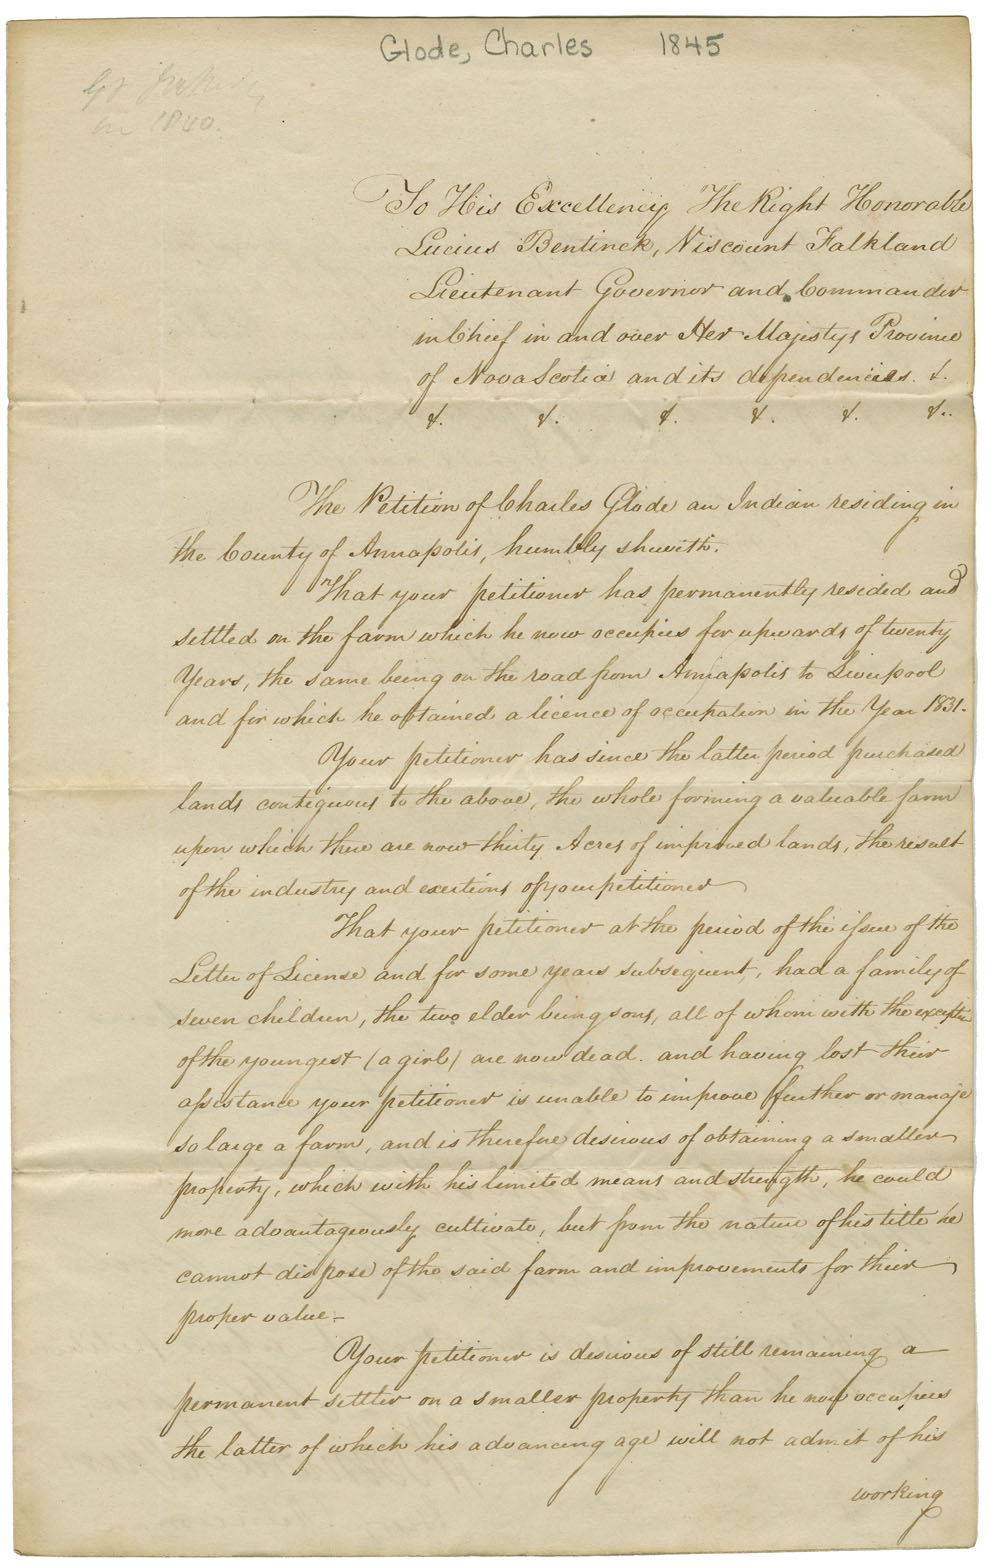 Petition of Charles Glode for a small grant of land. He resides on the road from Annapolis to Liverpool. See also RG 20 Ser. A - Gloade, Charles & Other Indians.